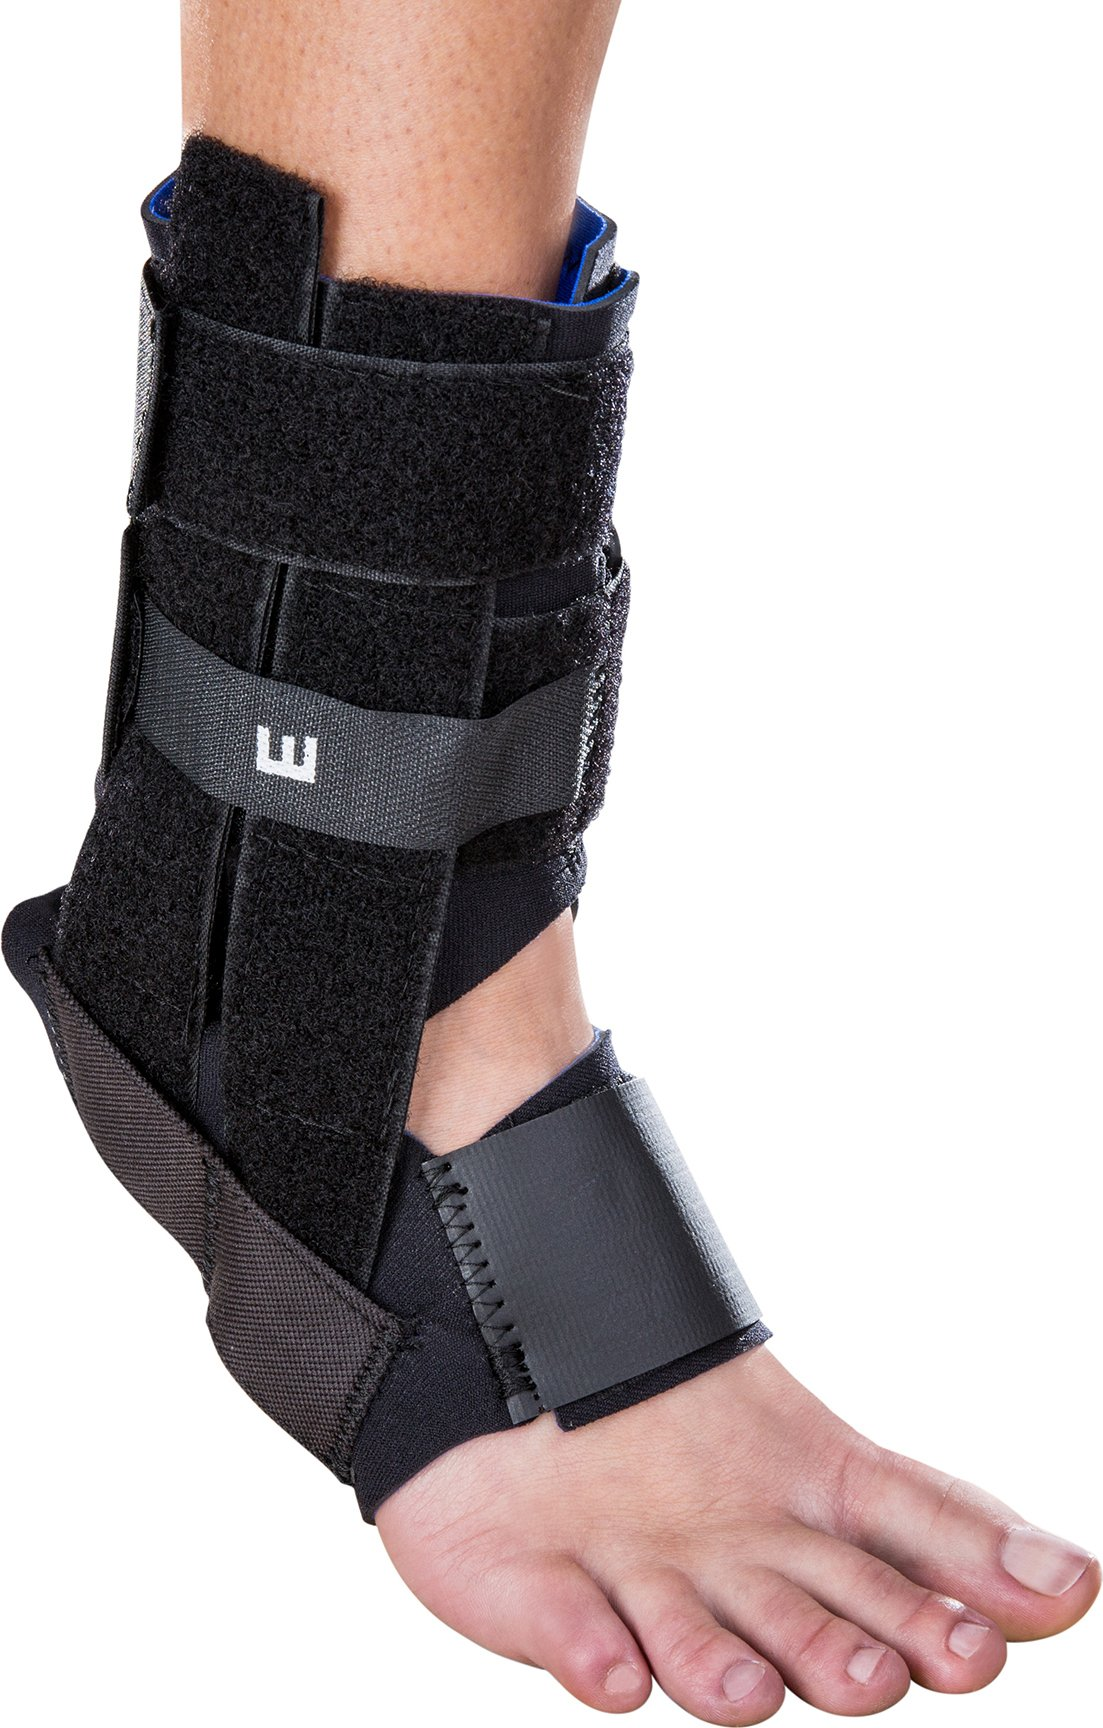 DonJoy RocketSoc Ankle Support Brace: Neoprene, Right Foot, Small